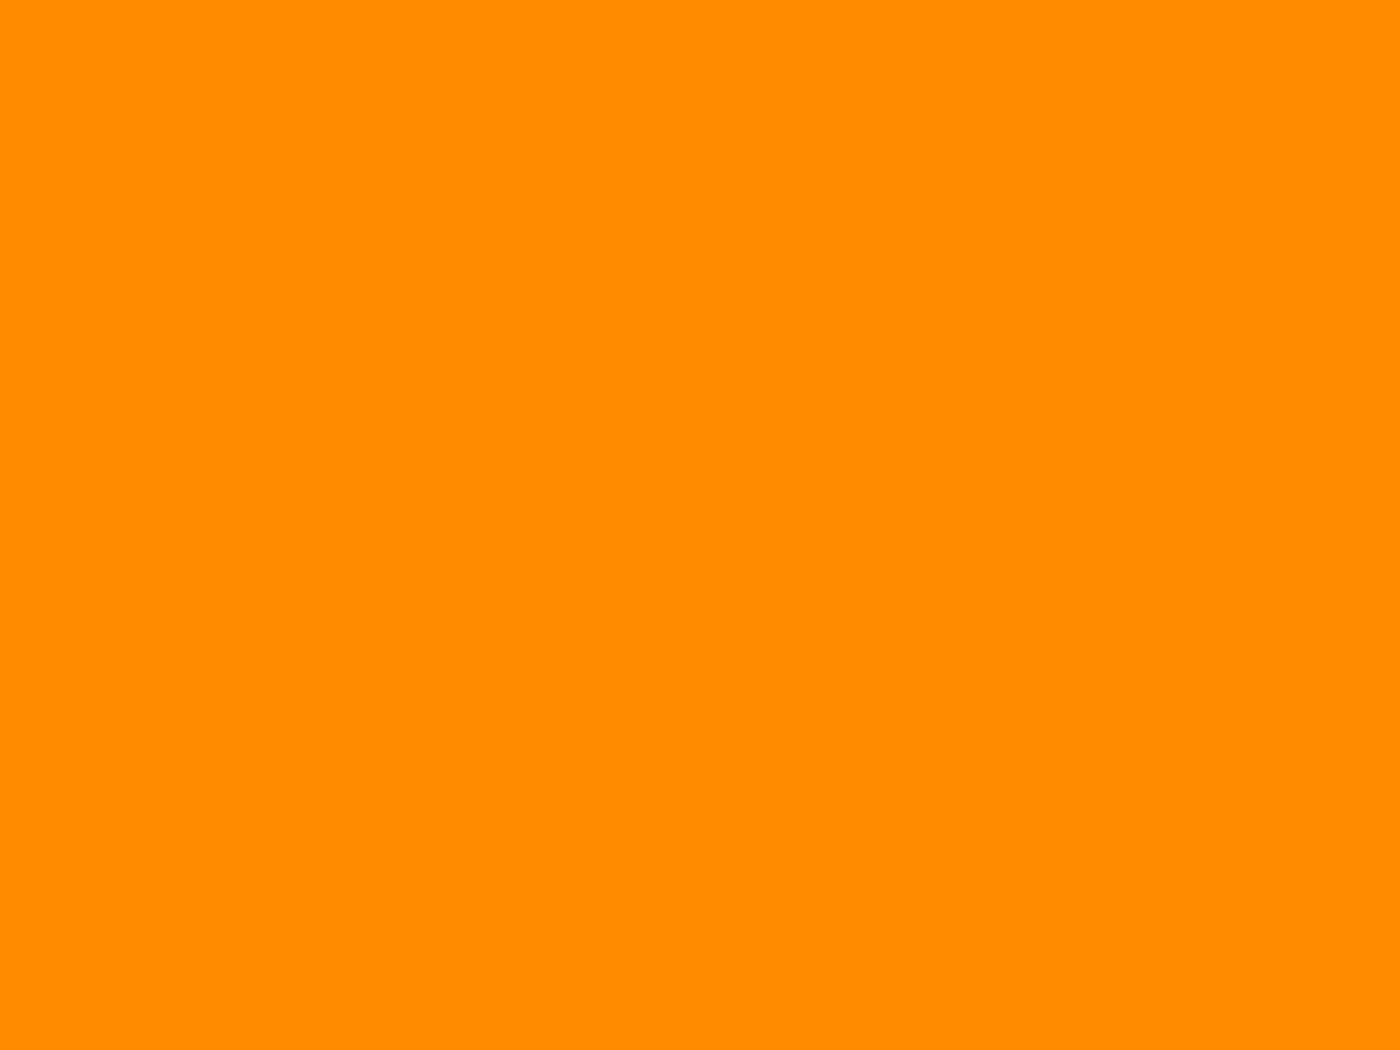 Orange solid color background view and download the below background 1400x1050